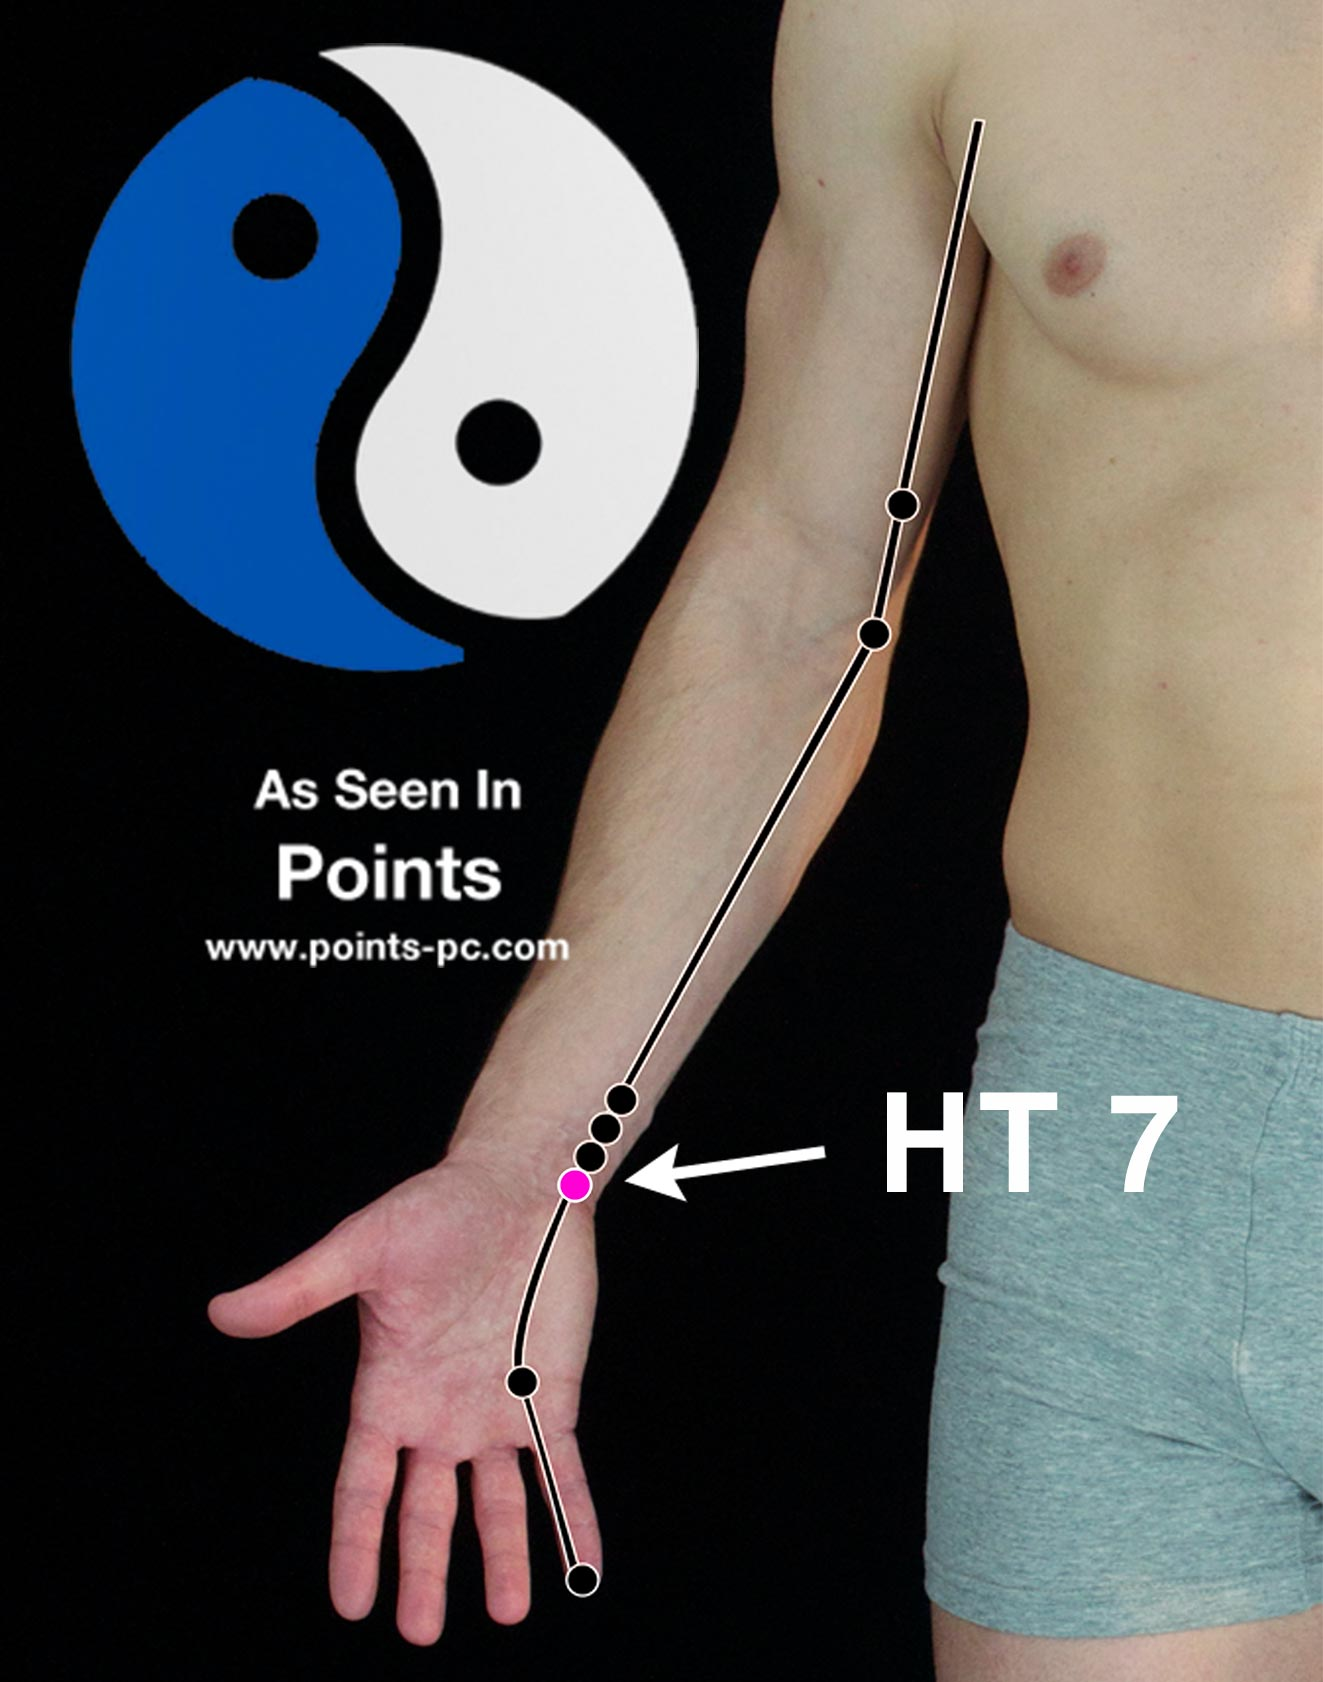 Acupuncture Point: Heart 7 - Acupuncture Technology News